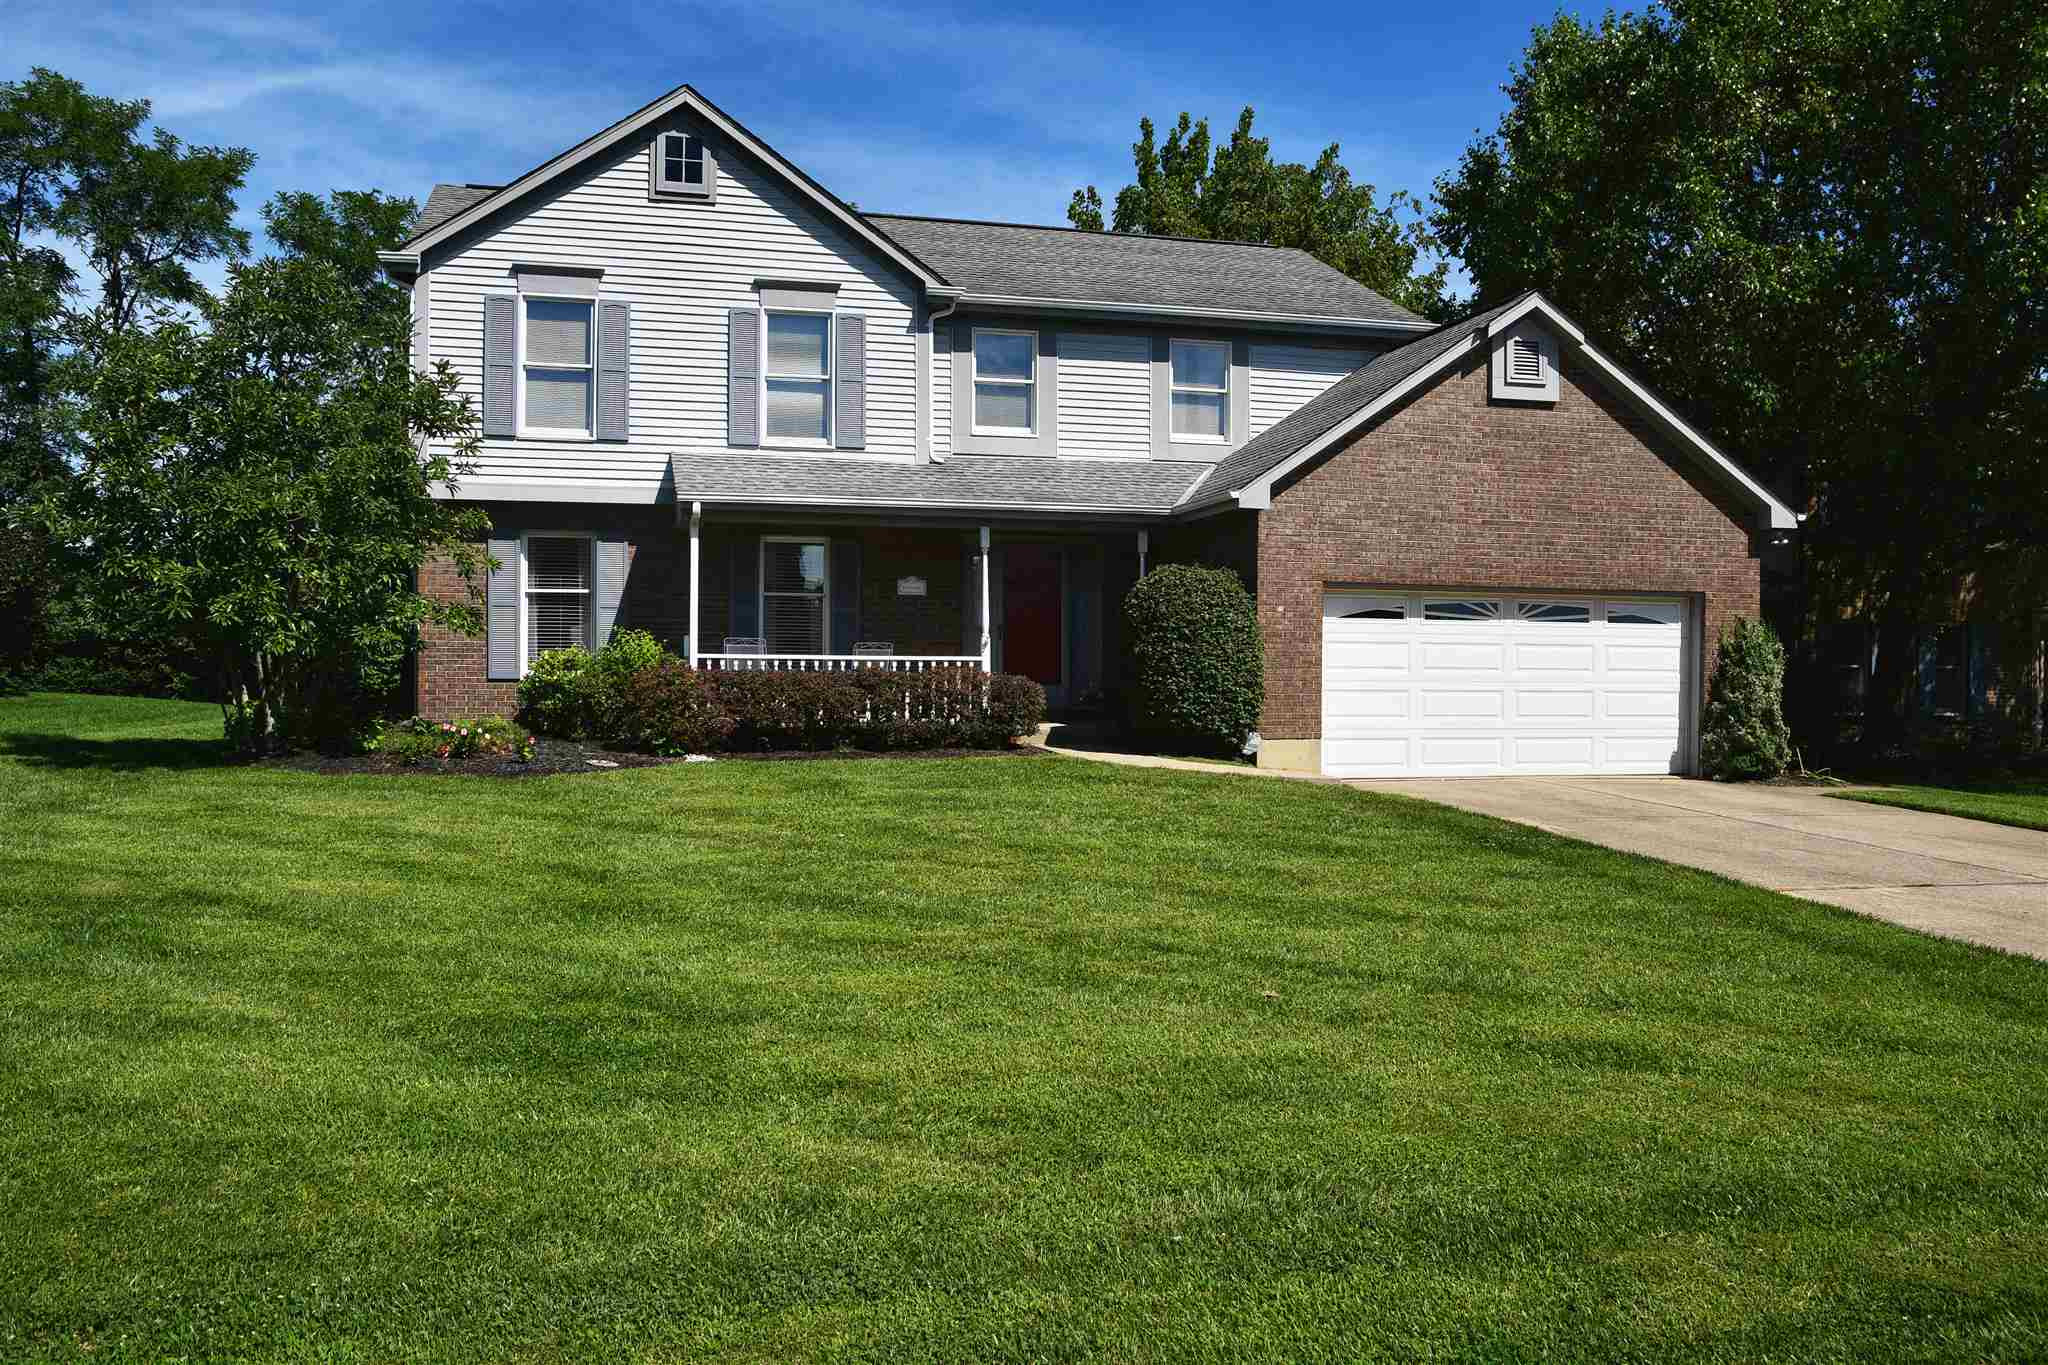 Photo 1 for 2476 High Crossing Crescent Springs, KY 41017